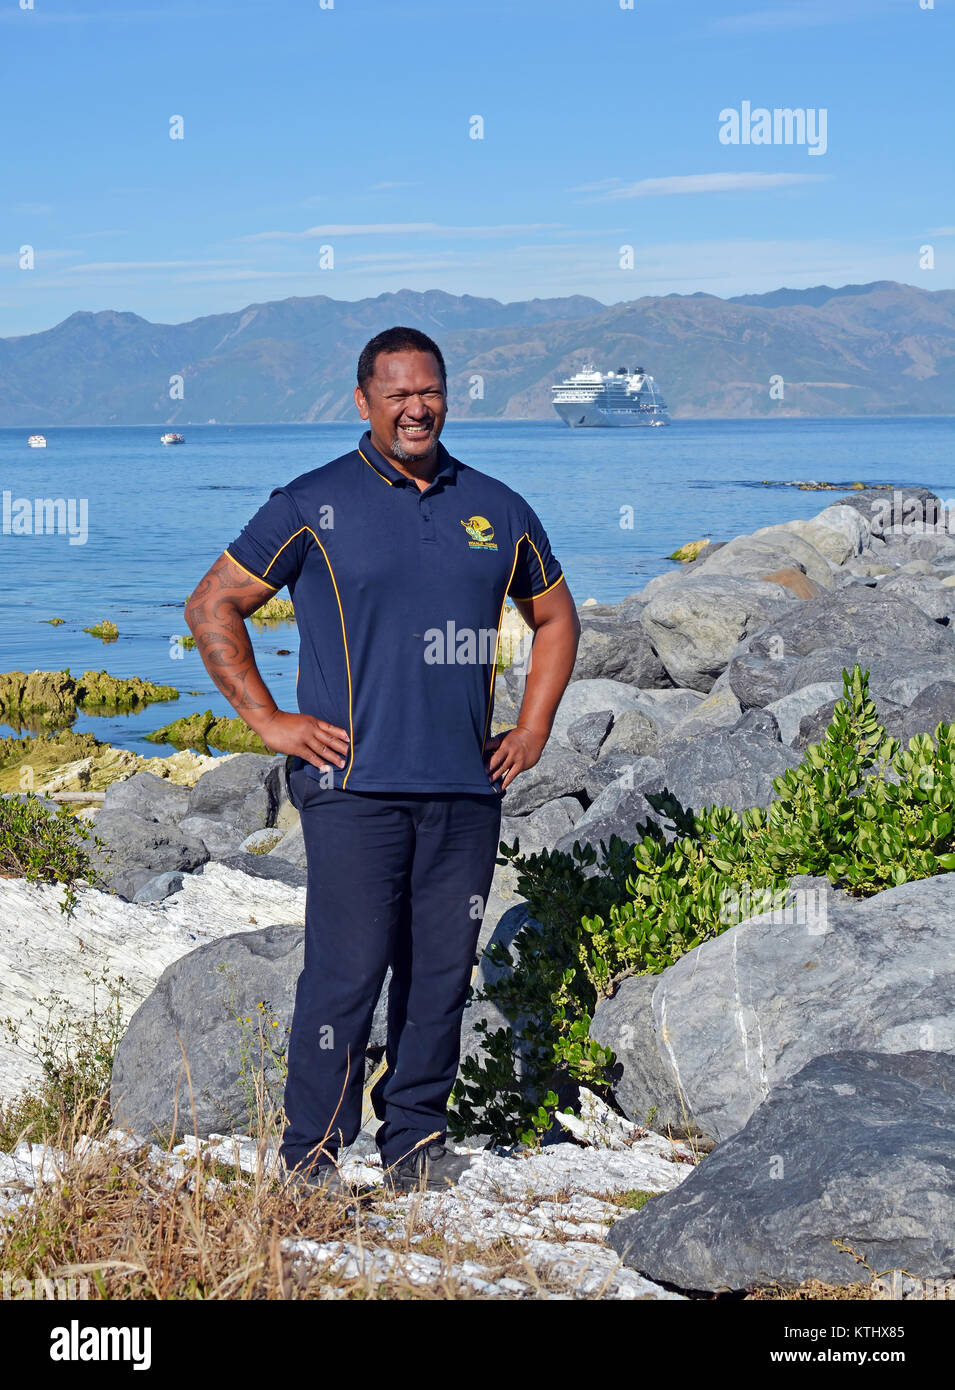 Kaikoura, New Zealand - December 15, 2017: Smiling Whale Watch Kaikoura Staff Member at South Bay Harbour with Cruise - Stock Image